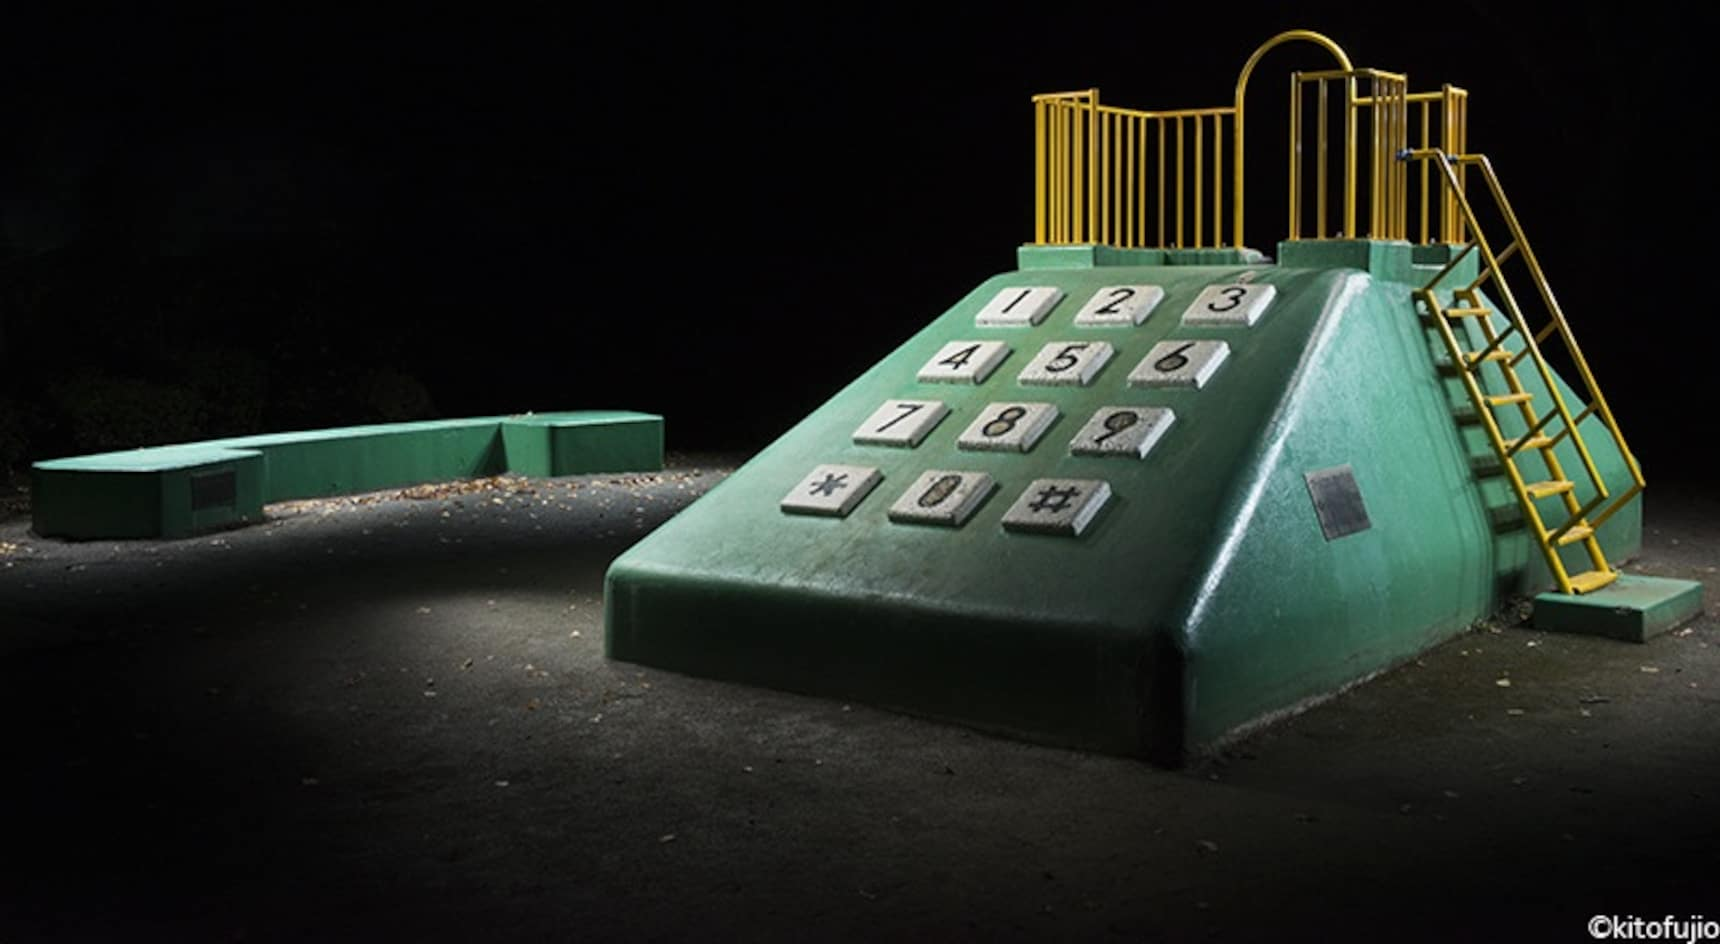 Exposing Playgrounds to Darkness